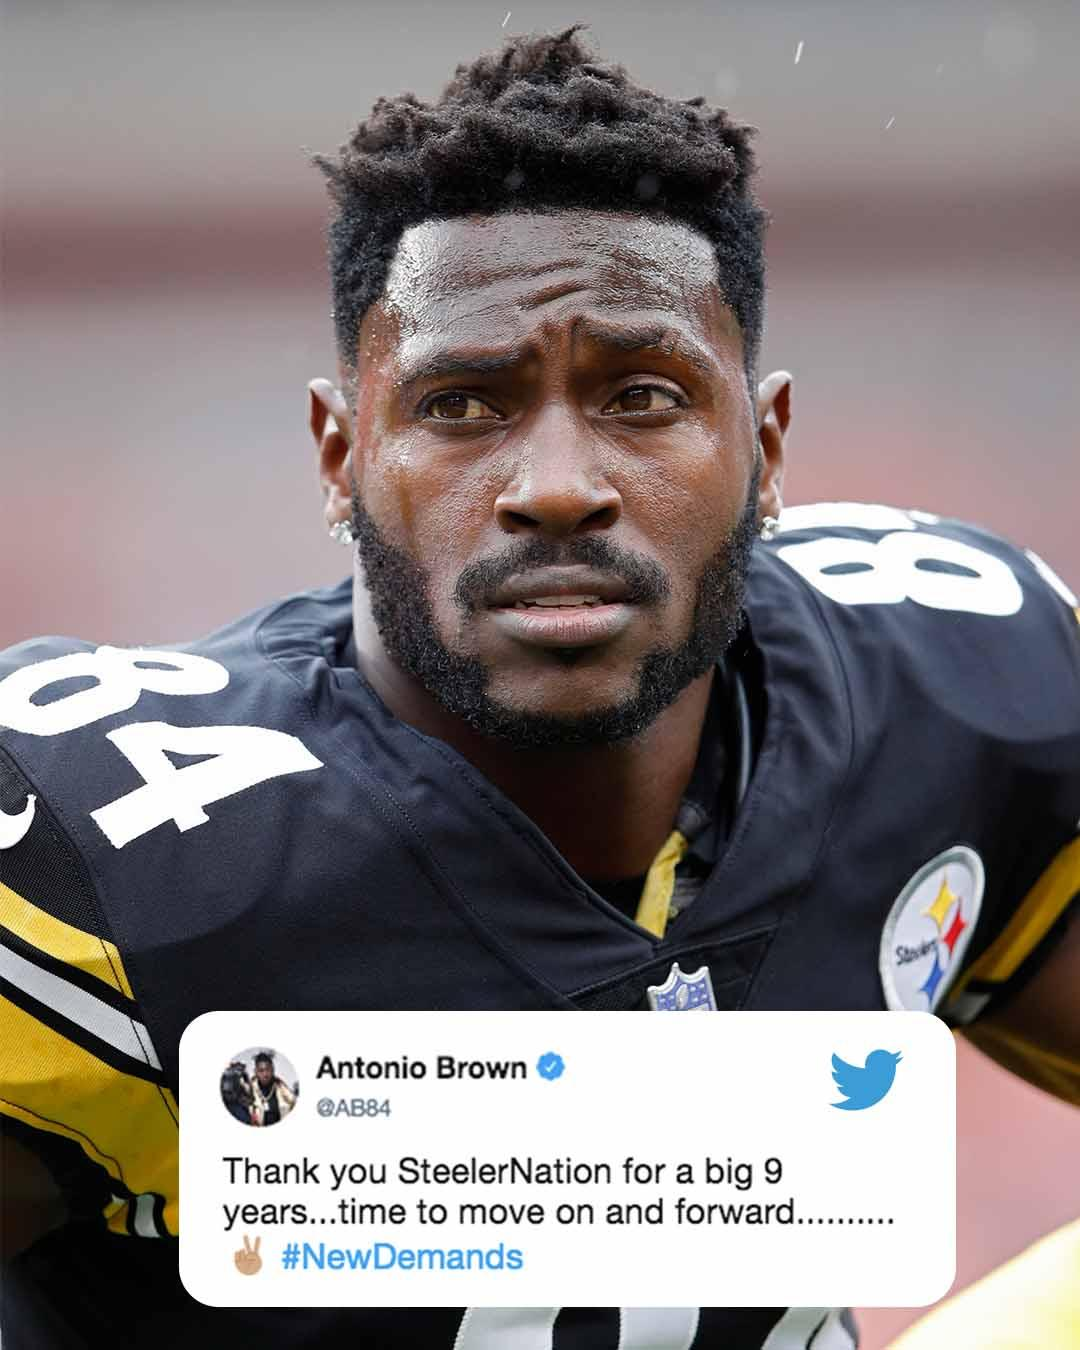 .@AB84 tweeted a farewell to the Steelers and their fans. https://t.co/yYOWy5vANJ